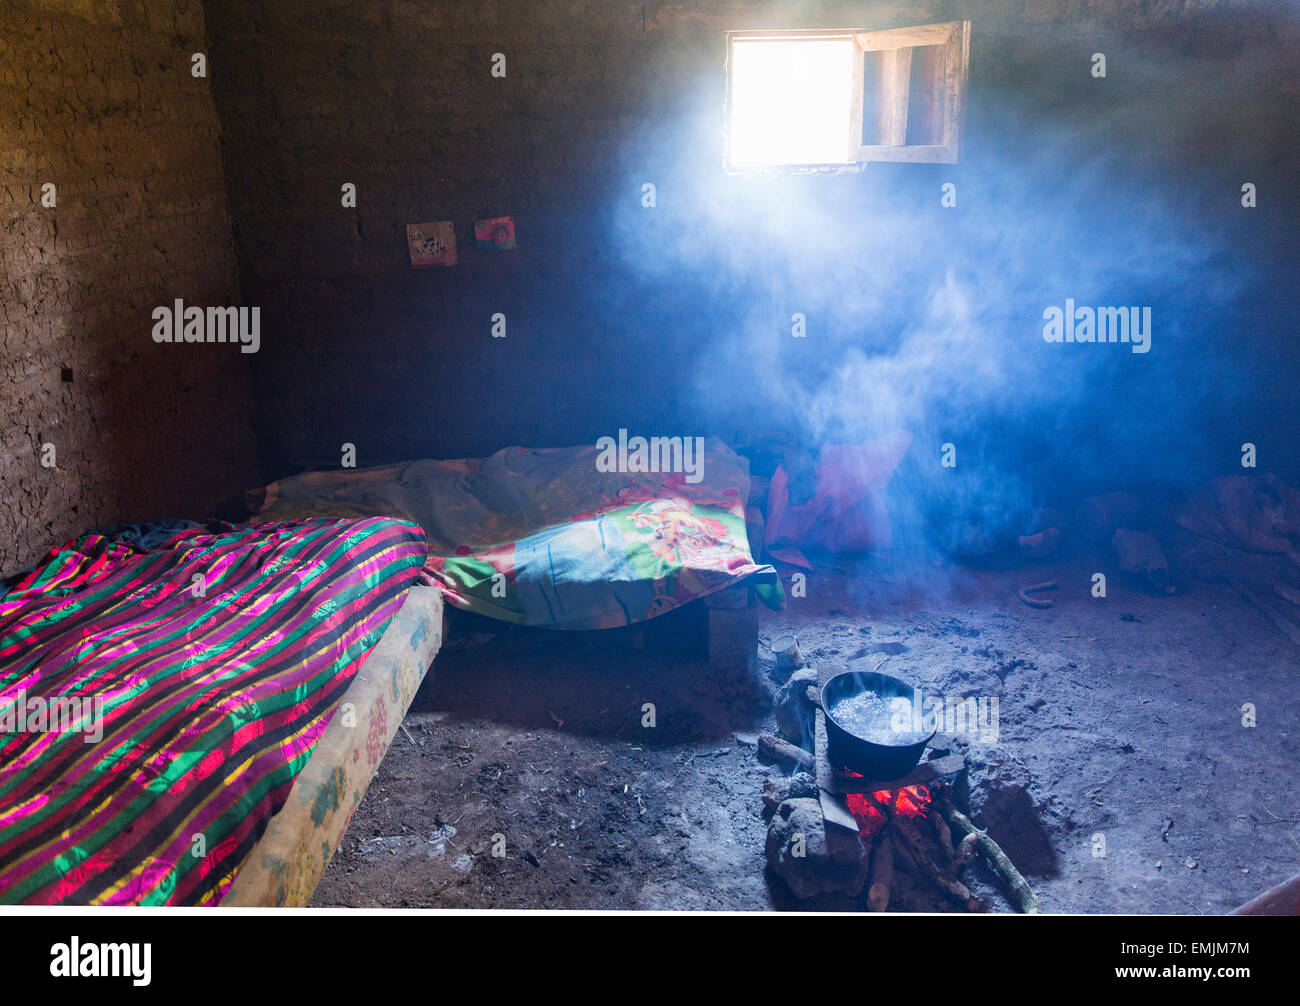 Guatemala,Jalapa,adobe home, smoky room with poor ventilation and fire pit for heating and cooking - Stock Image